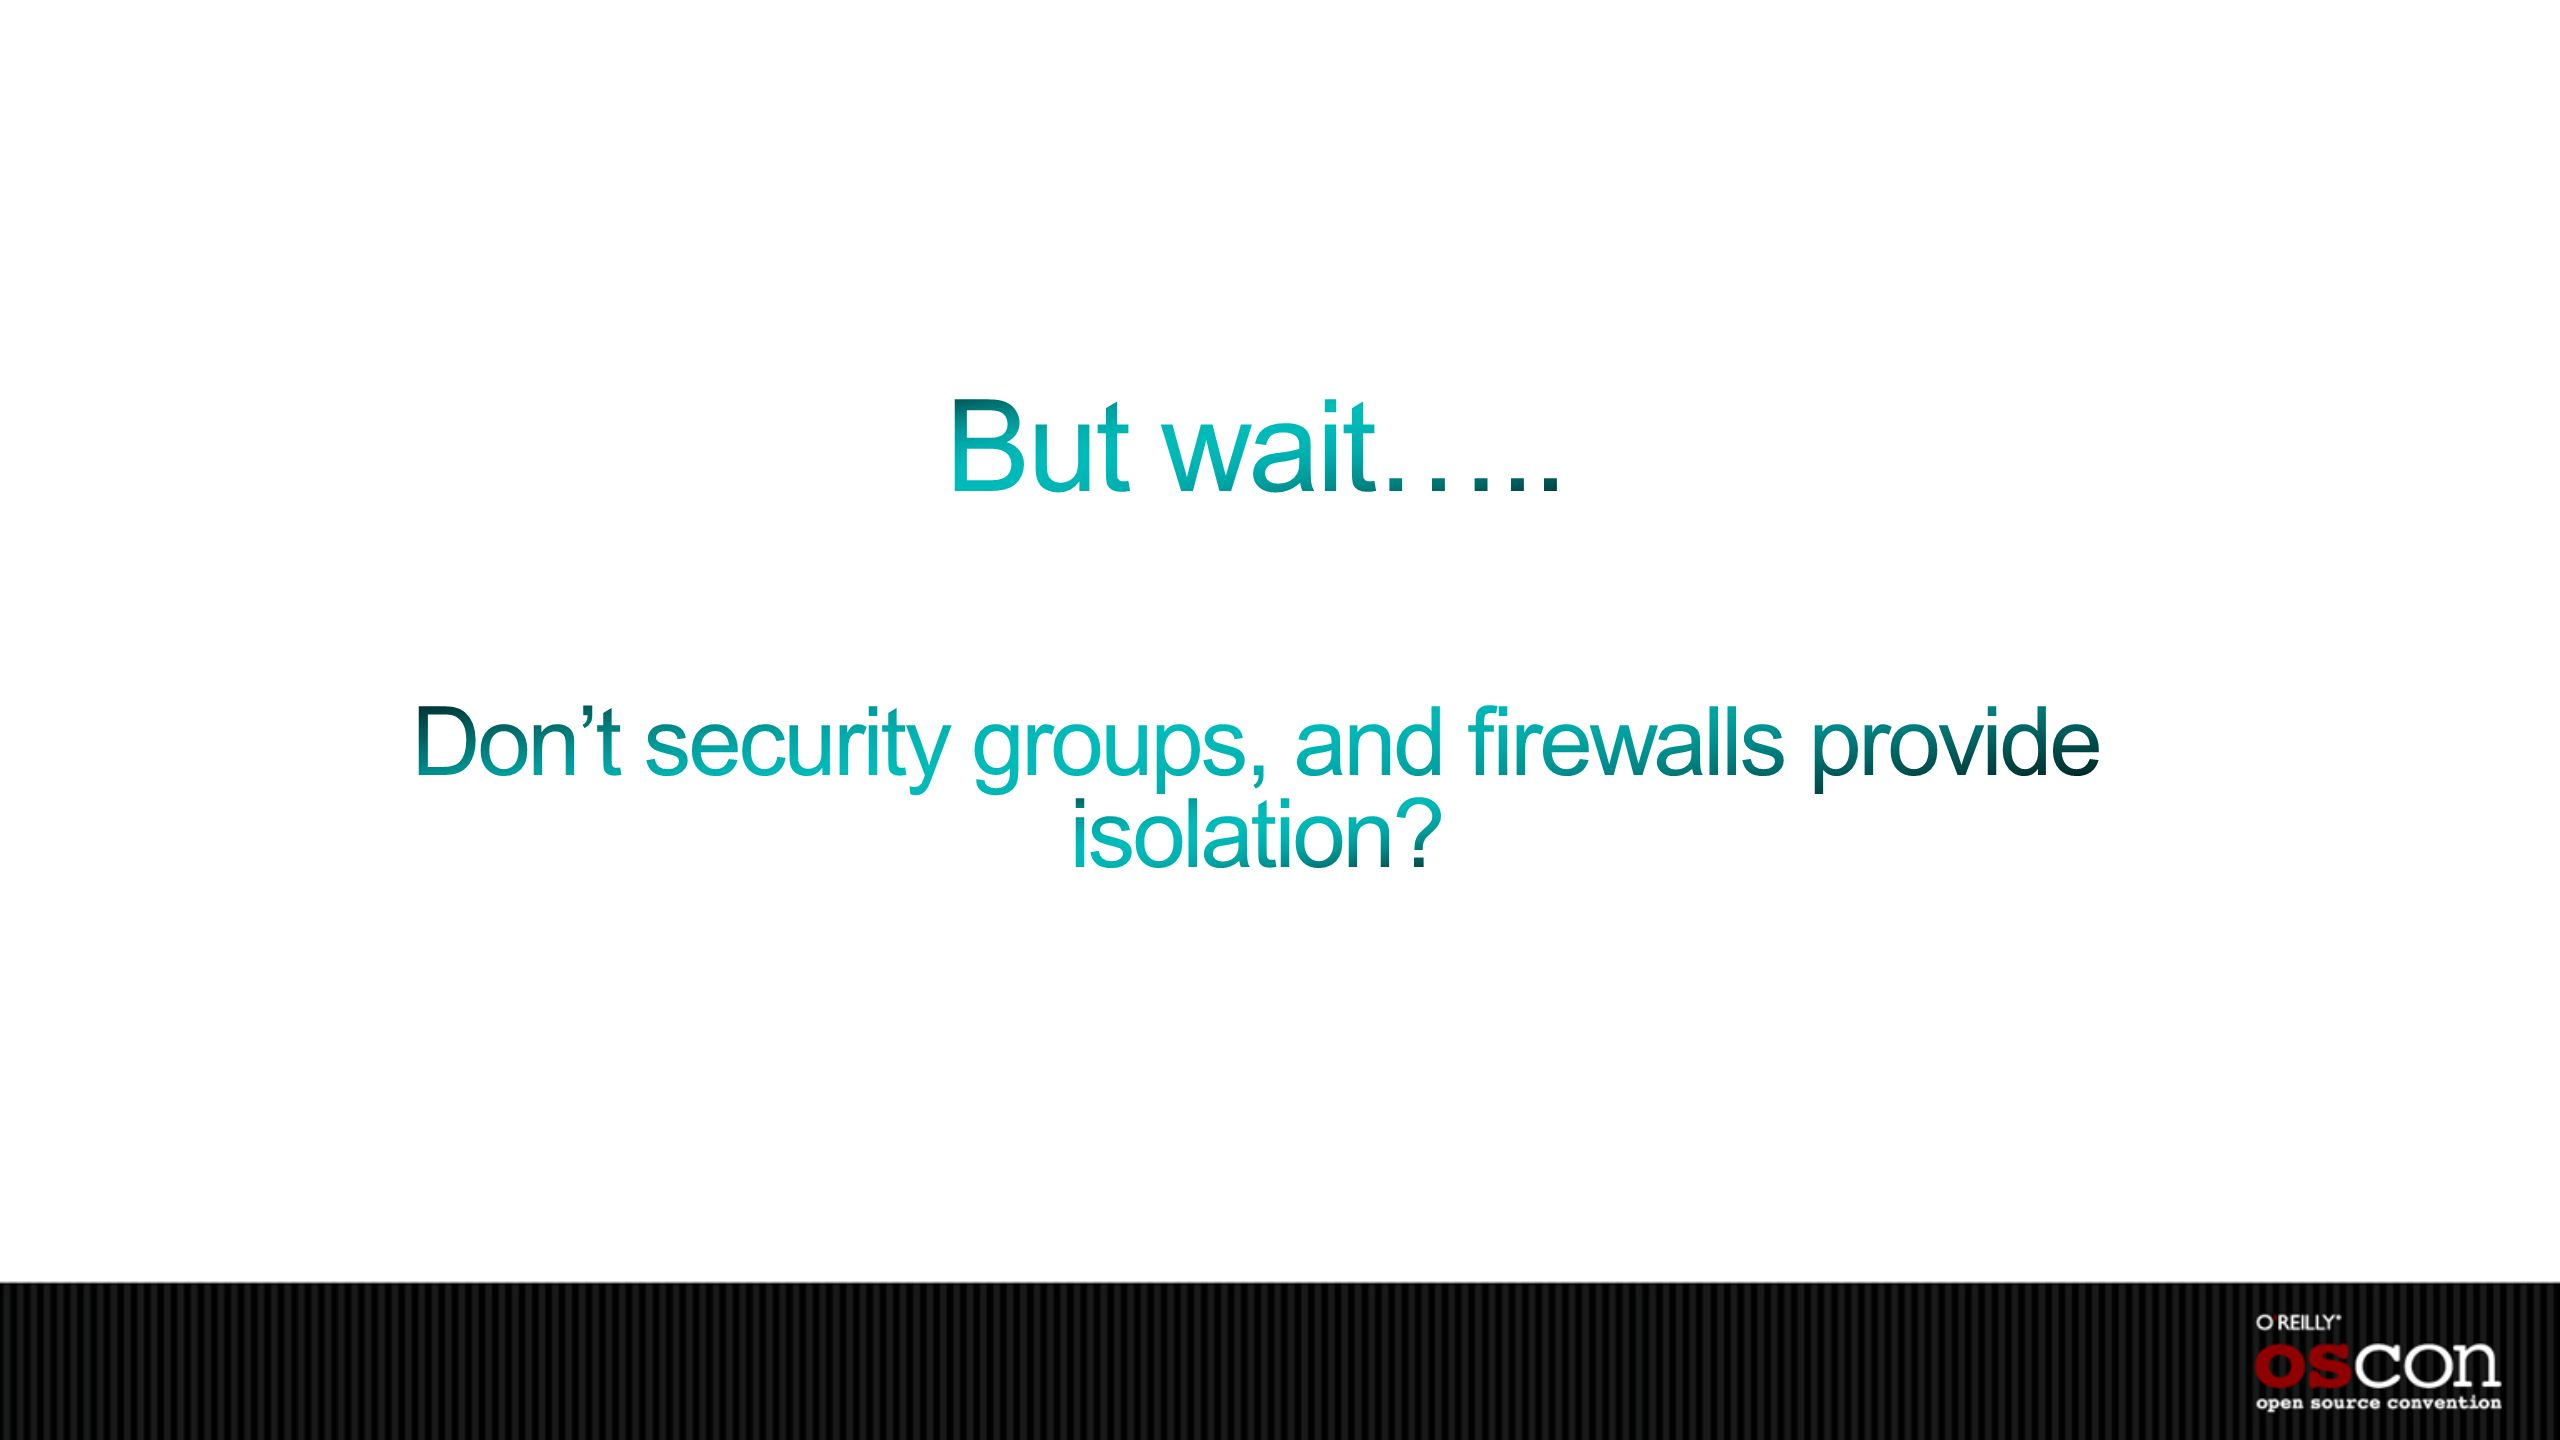 But wait….. Don't security groups, and firewalls provide isolation